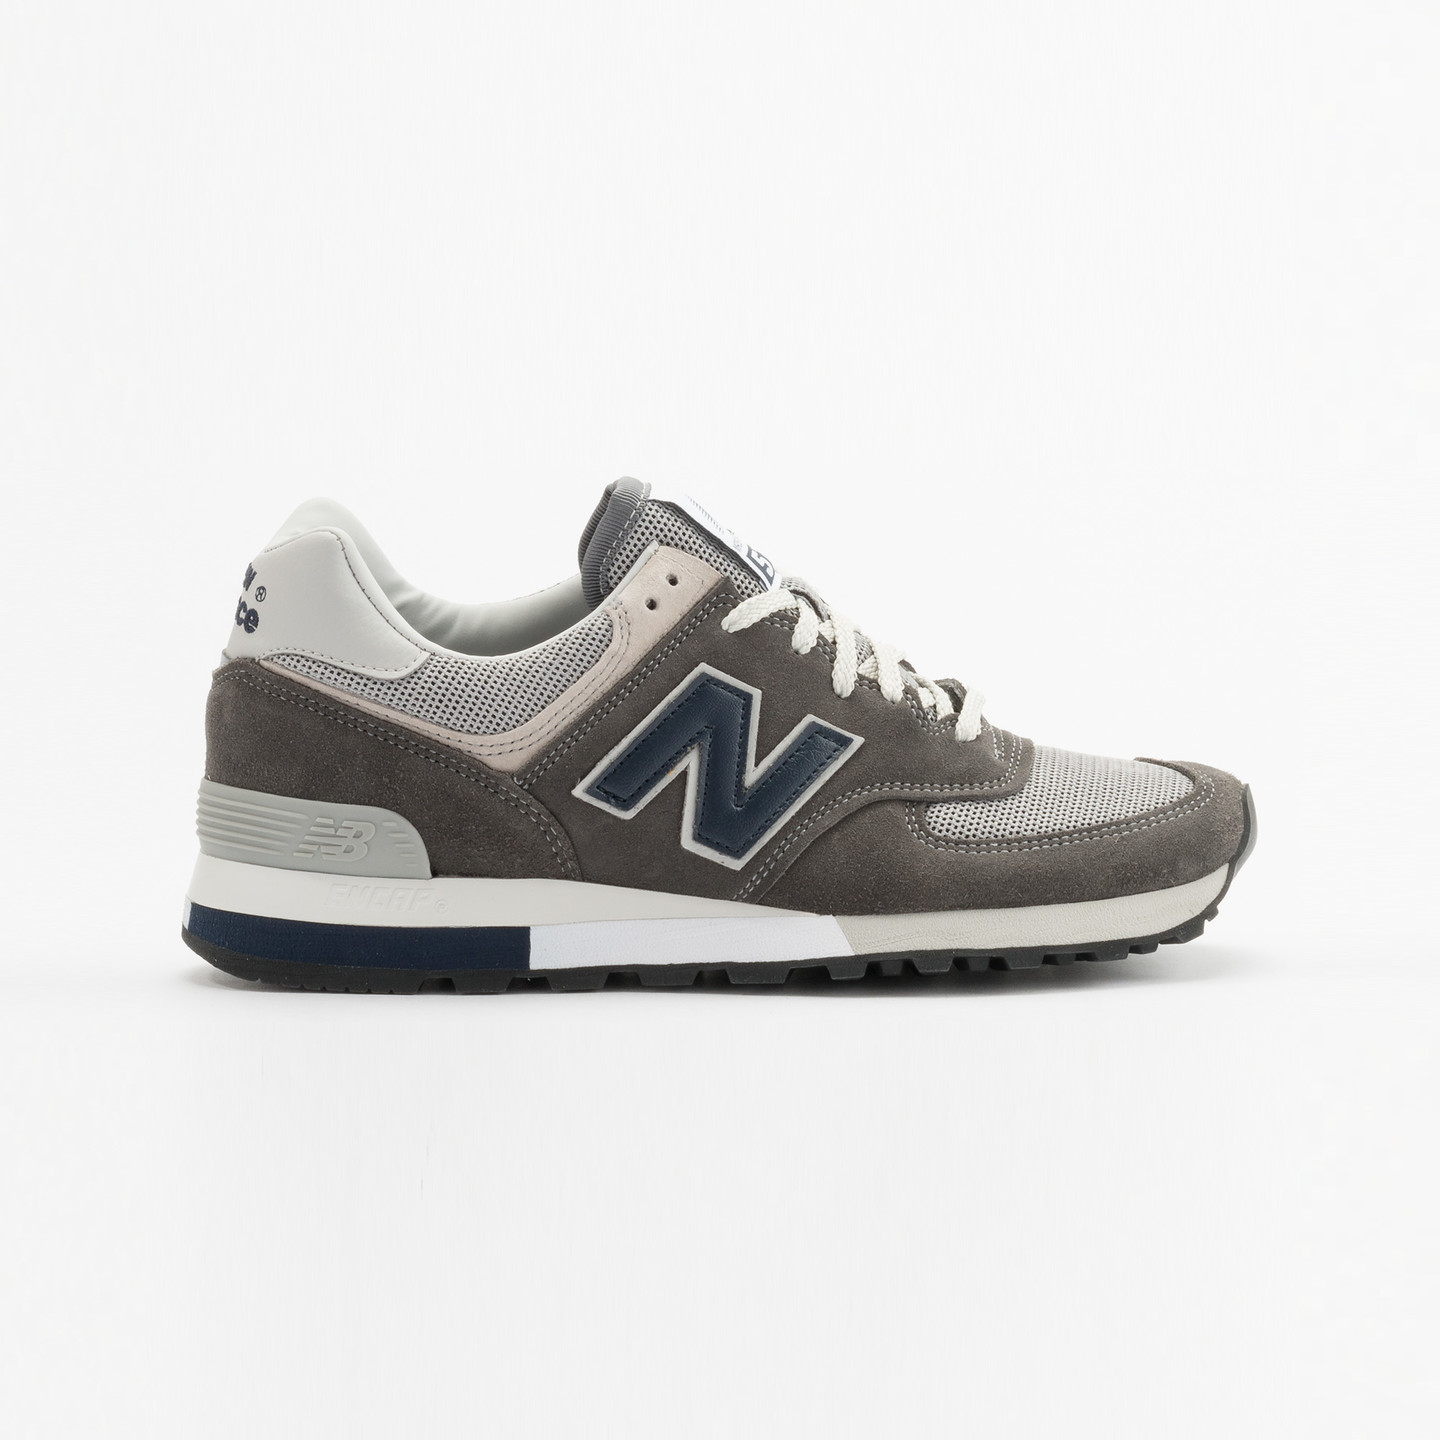 New Balance M576 OGG - Made in England Grey / Navy / White M576OGG